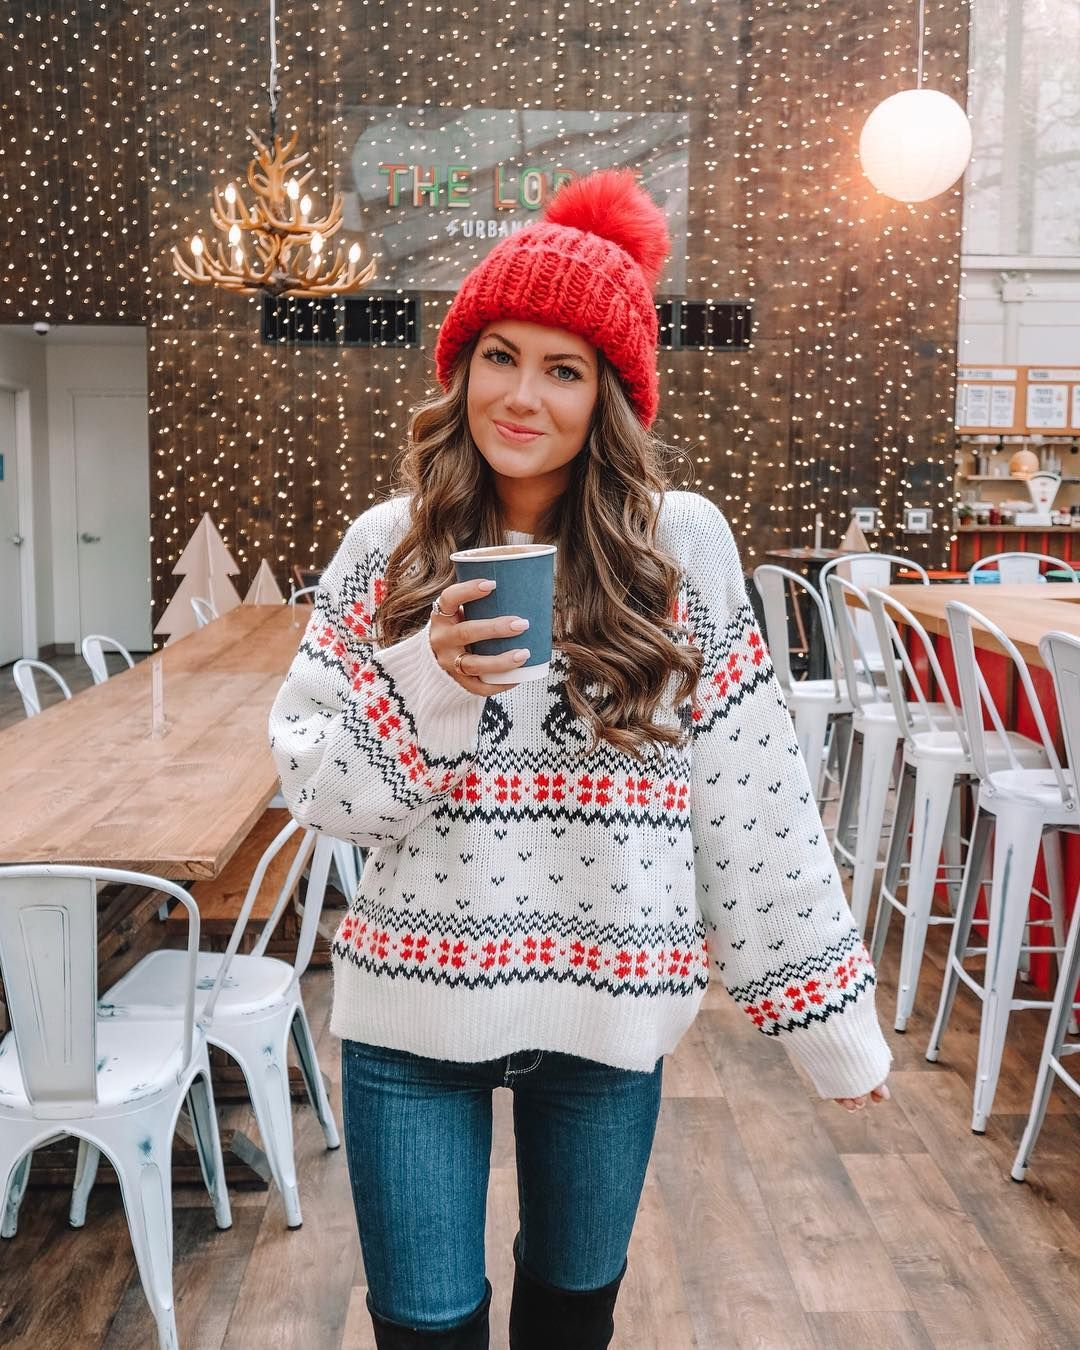 """Caitlin Covington on Instagram: """"Happy Fri-YAY! Exploring Bryant Park this morning... it's so cute all decorated for Christmas! � This festive holiday sweater is my new…"""""""